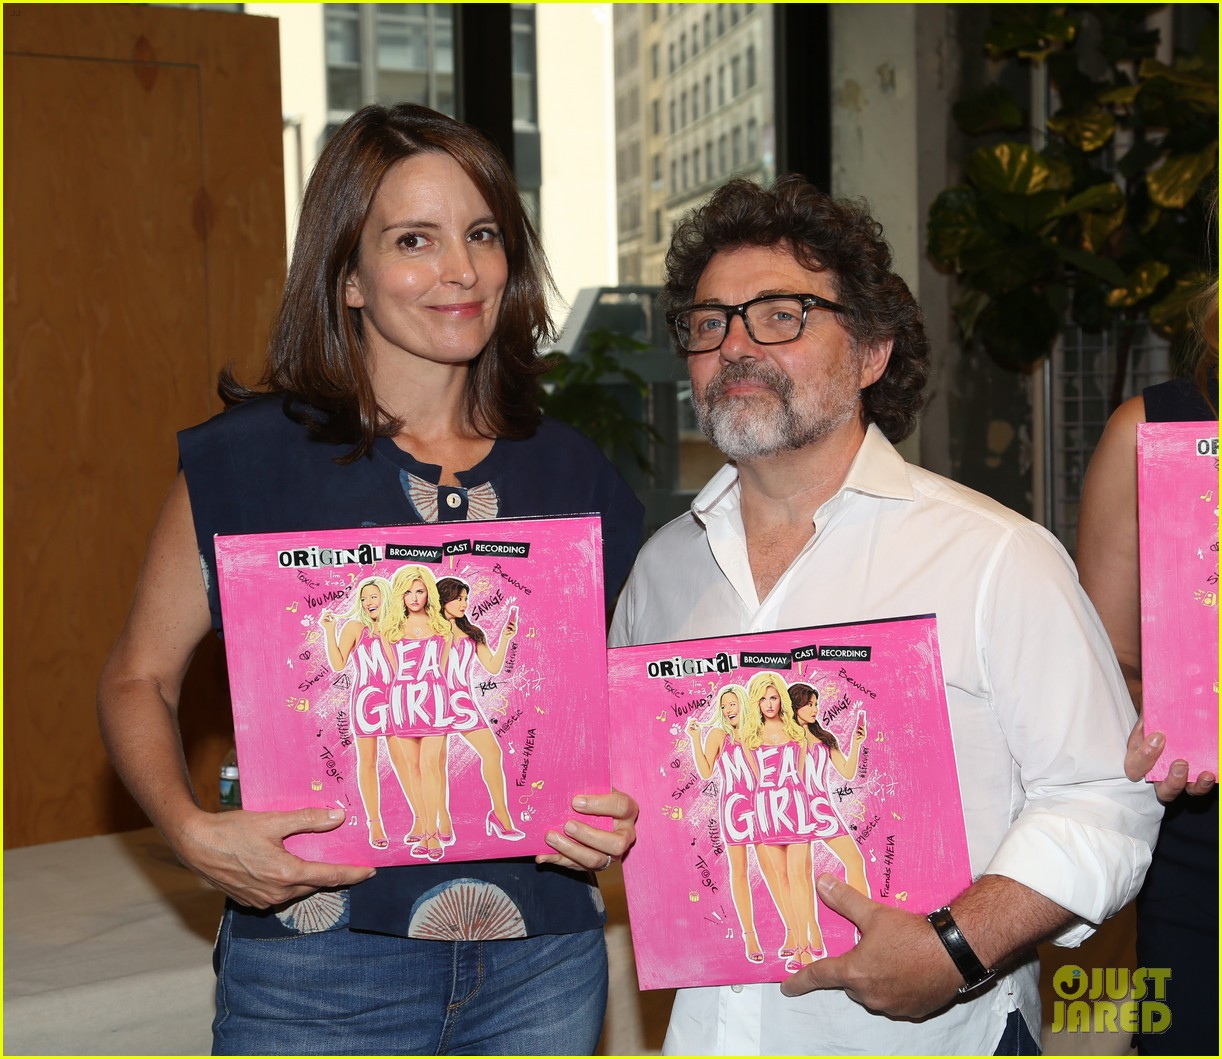 Tina Fey Joins 'Mean Girls' Cast To Release Cast Album On